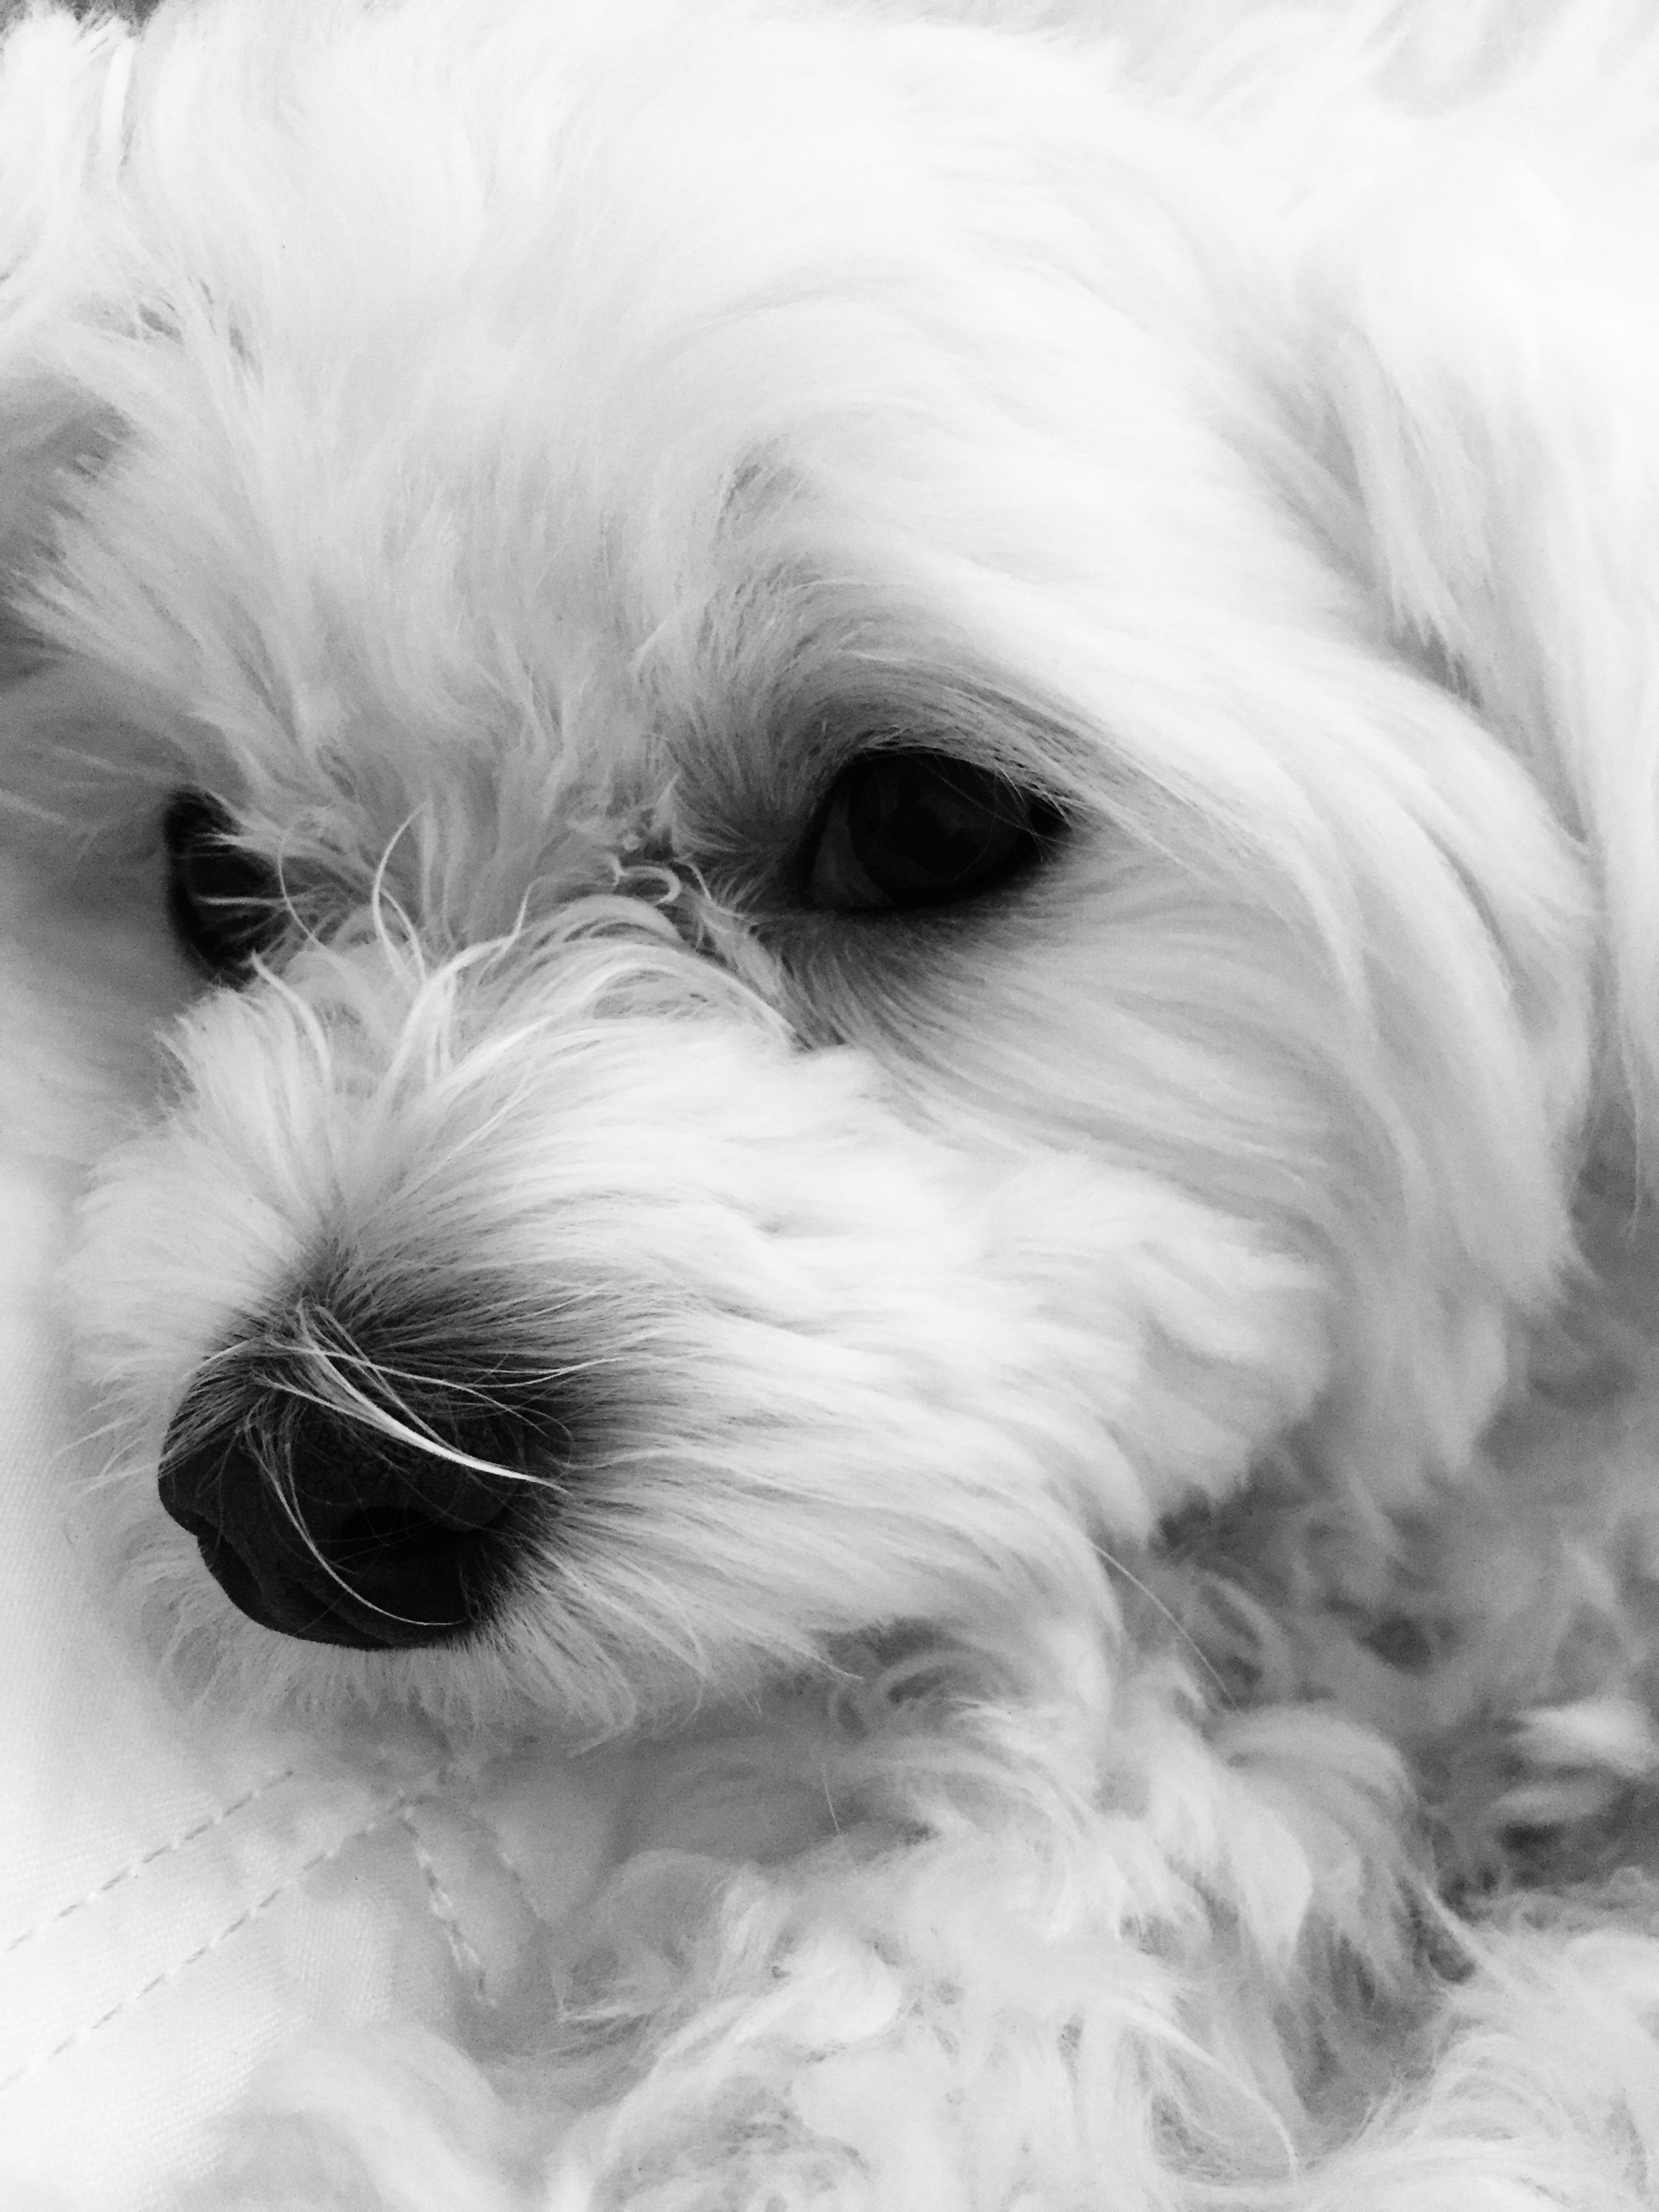 Pin by PJC on Maltese Cutest ever Animals, Maltese, Dogs